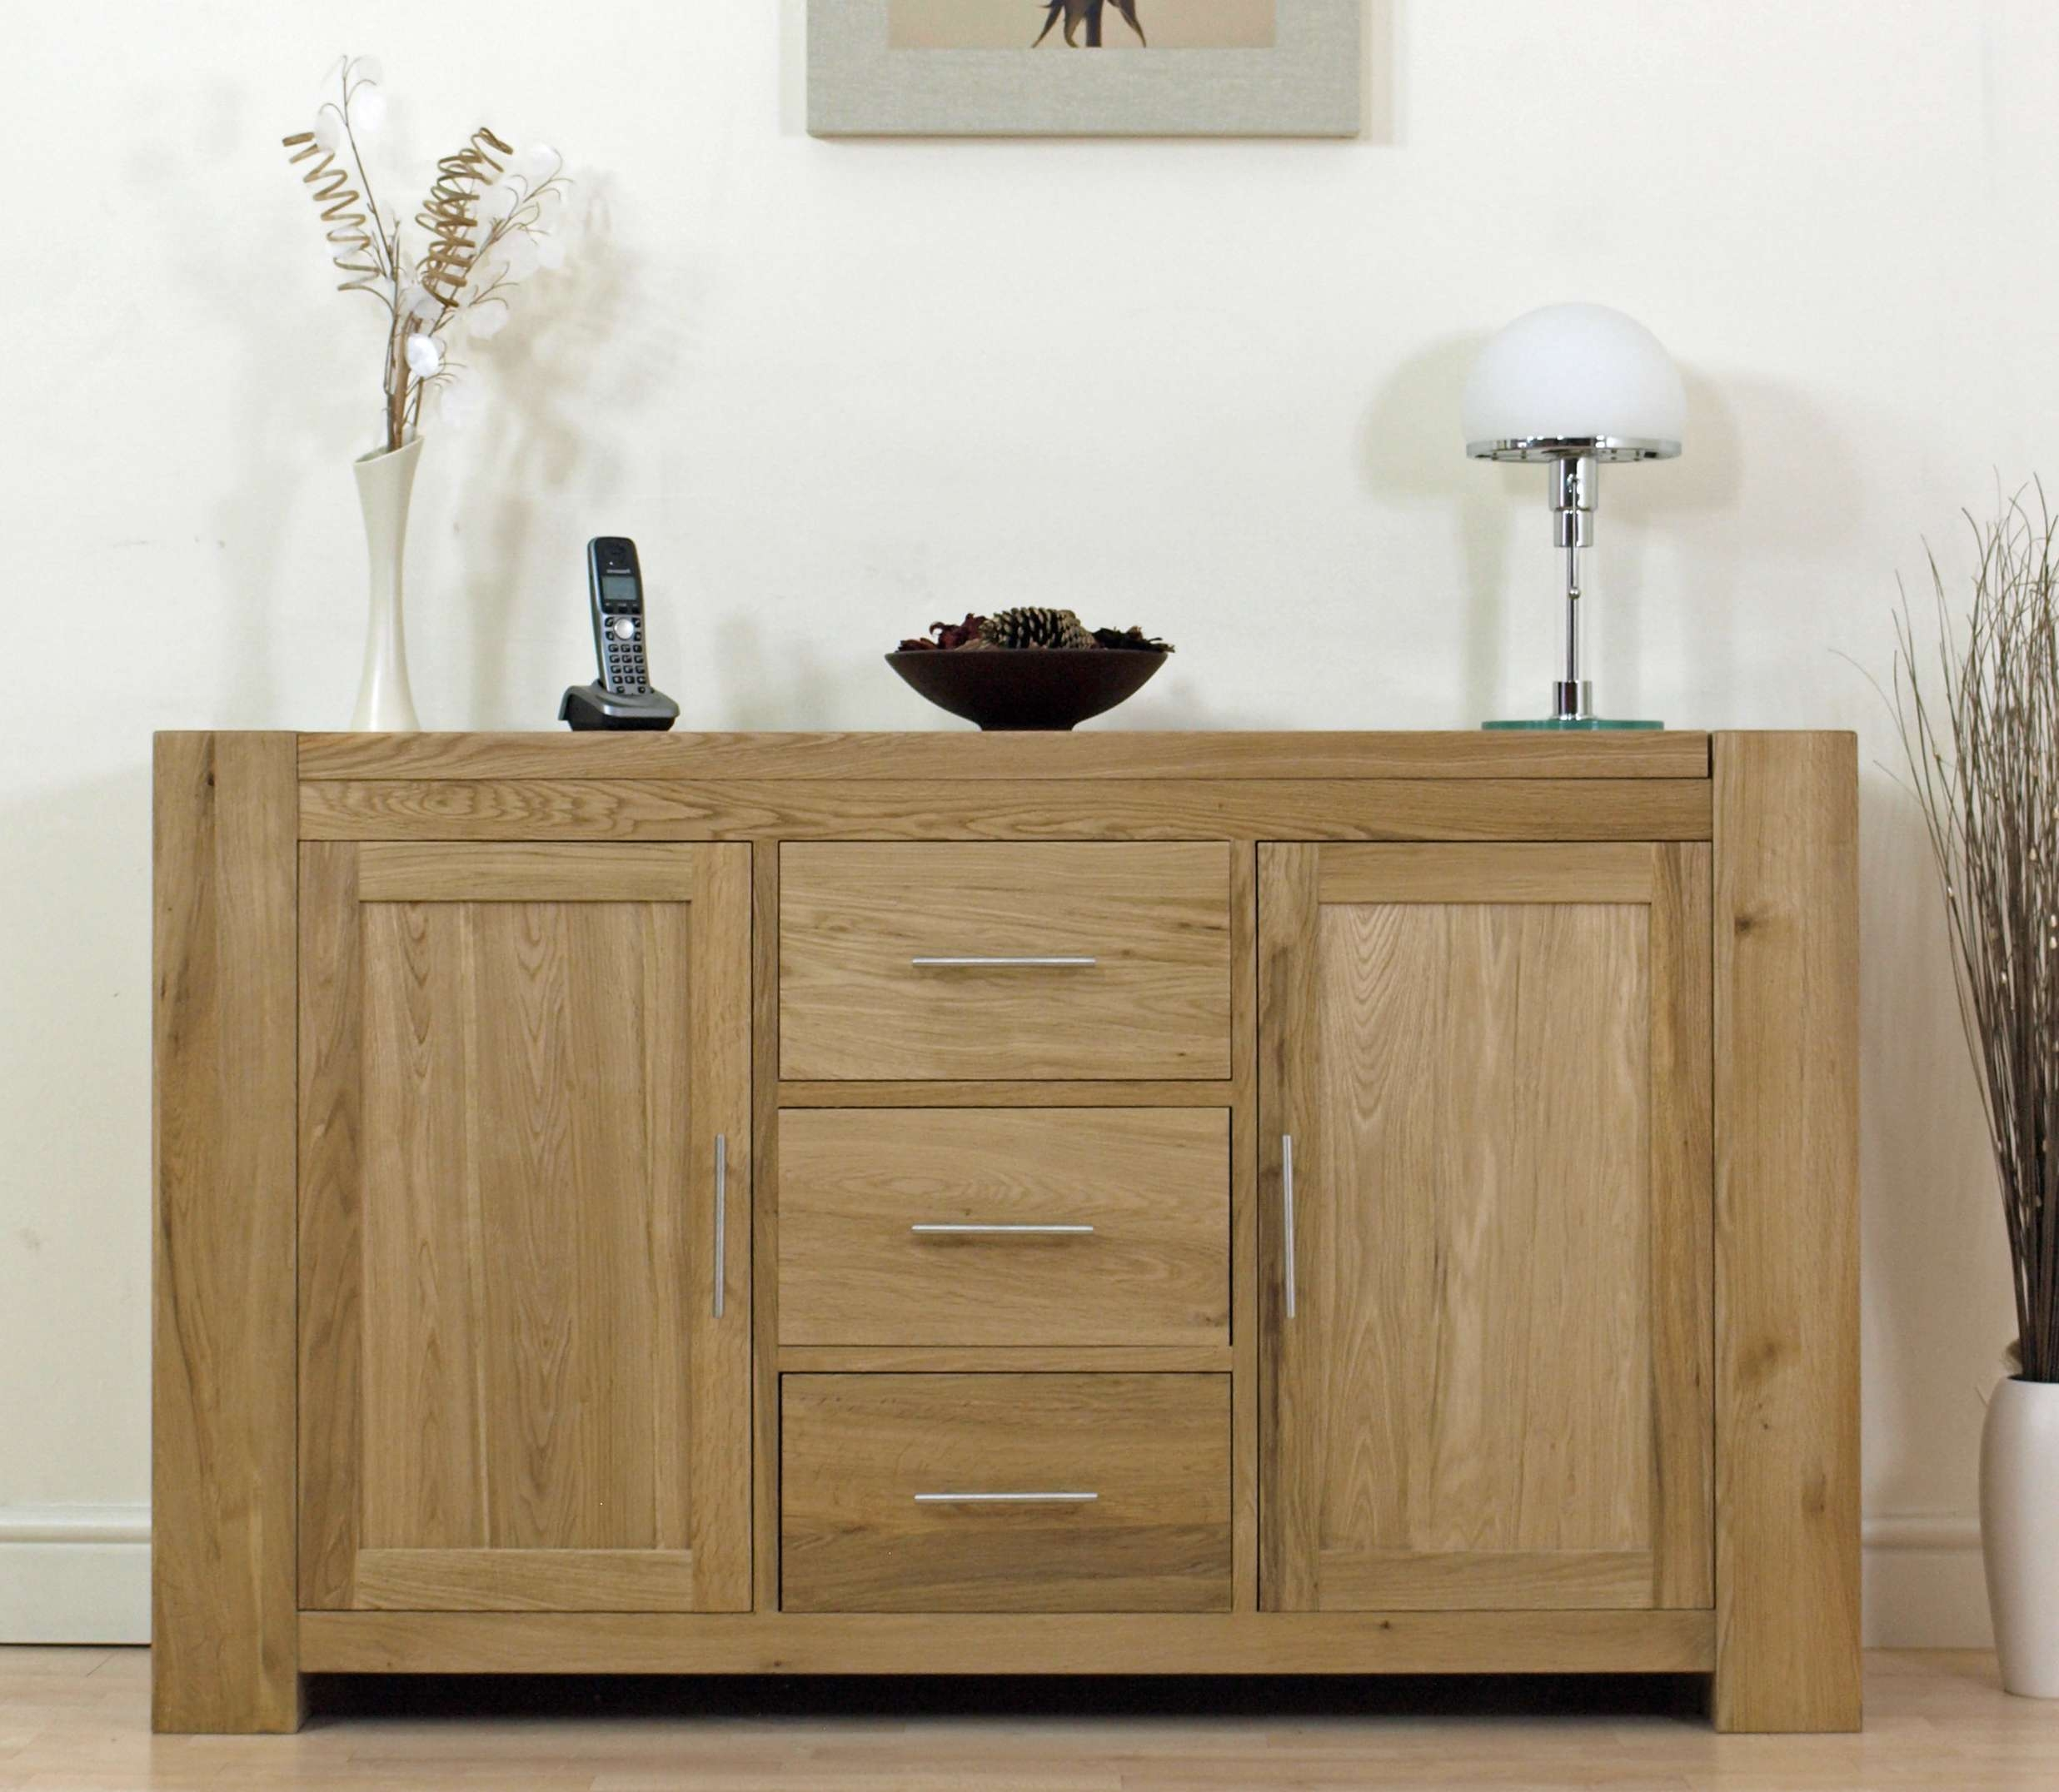 Solid Oak Sideboard Is Your First Choice Living Room Furniture – Hgnv With Solid Oak Sideboards (View 17 of 20)